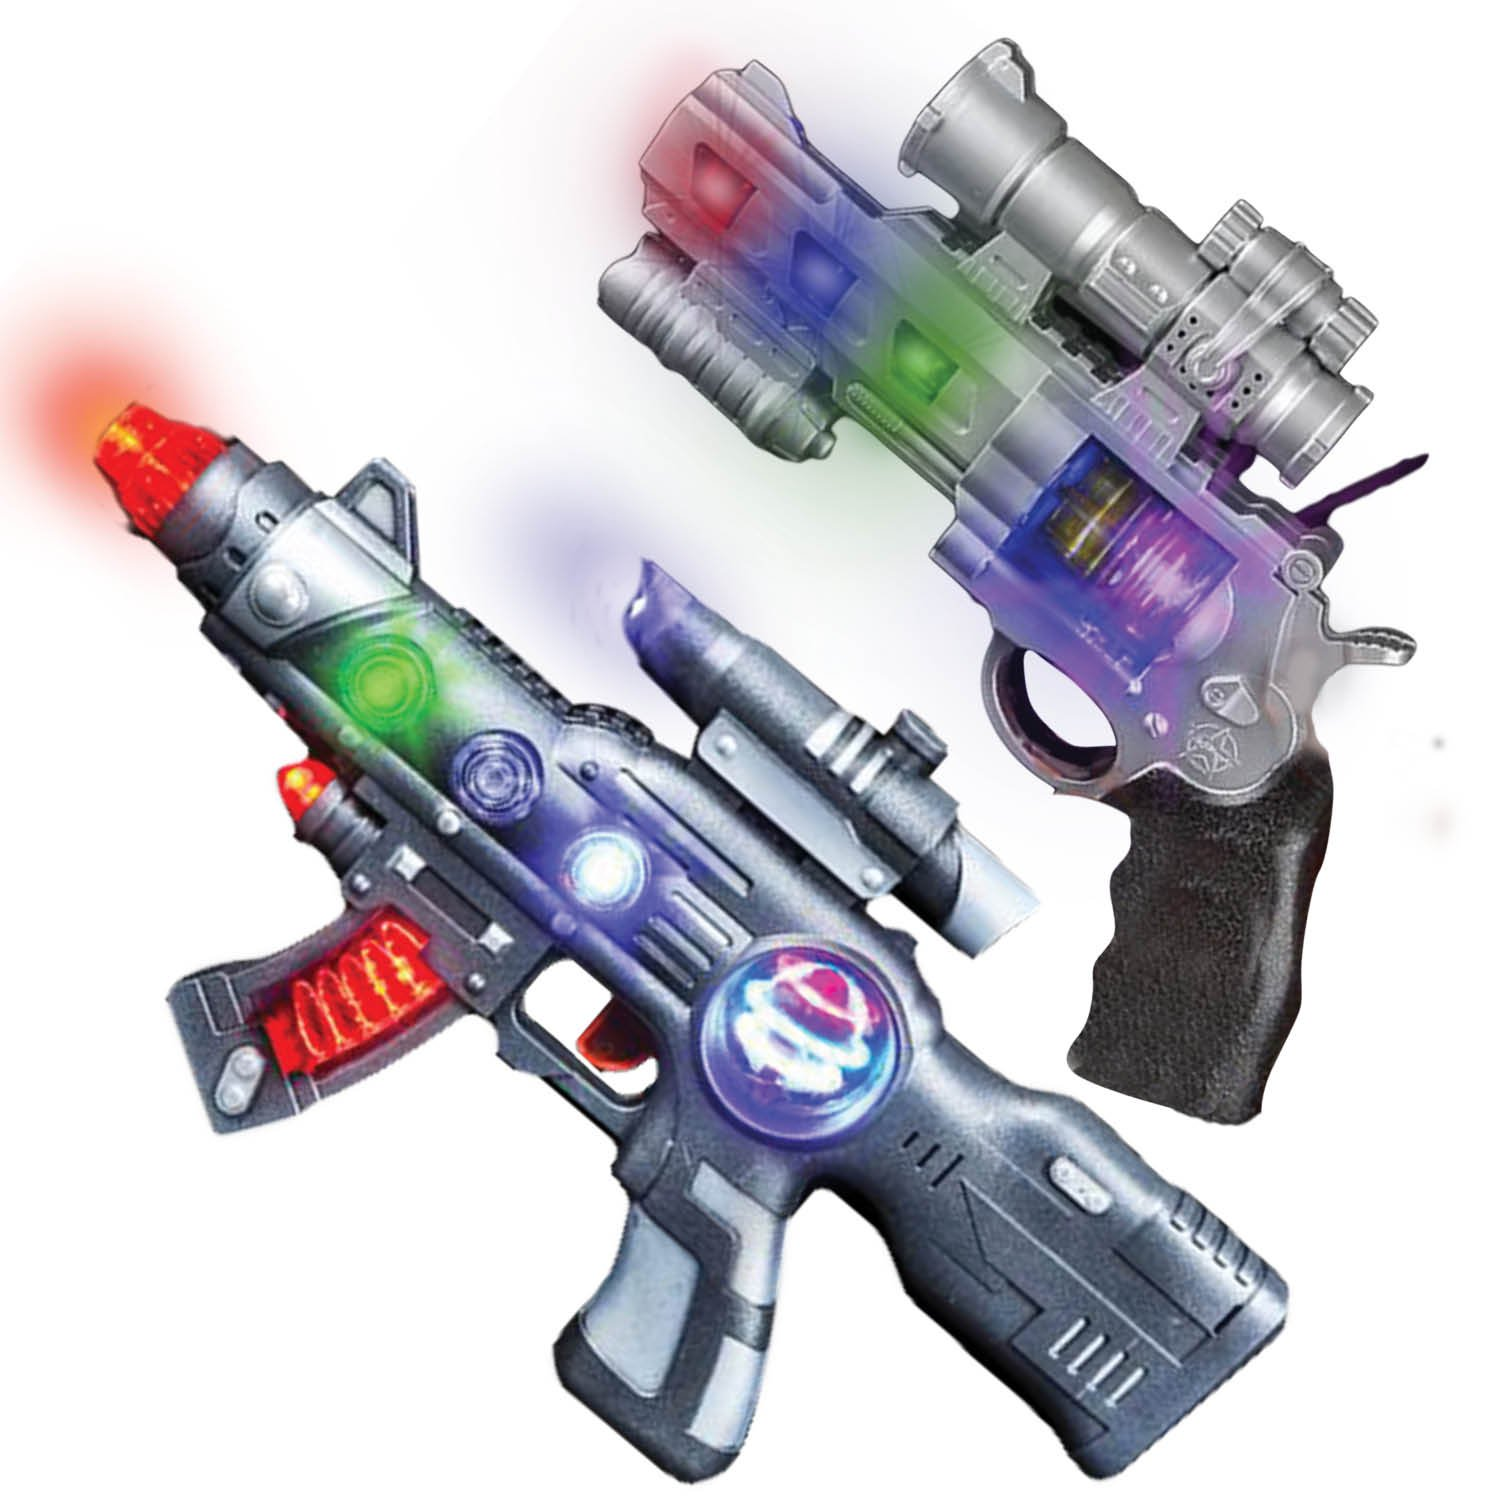 LED Light Up Toy Gun Set by Art Creativity - Super Ray Gun Blasters with Colorful Flashing LEDs & Sound - Cool Play Toys for Boys and Girls - Includes 12.5'' Assault Rifle, 9'' Hand Pistol and Batteries